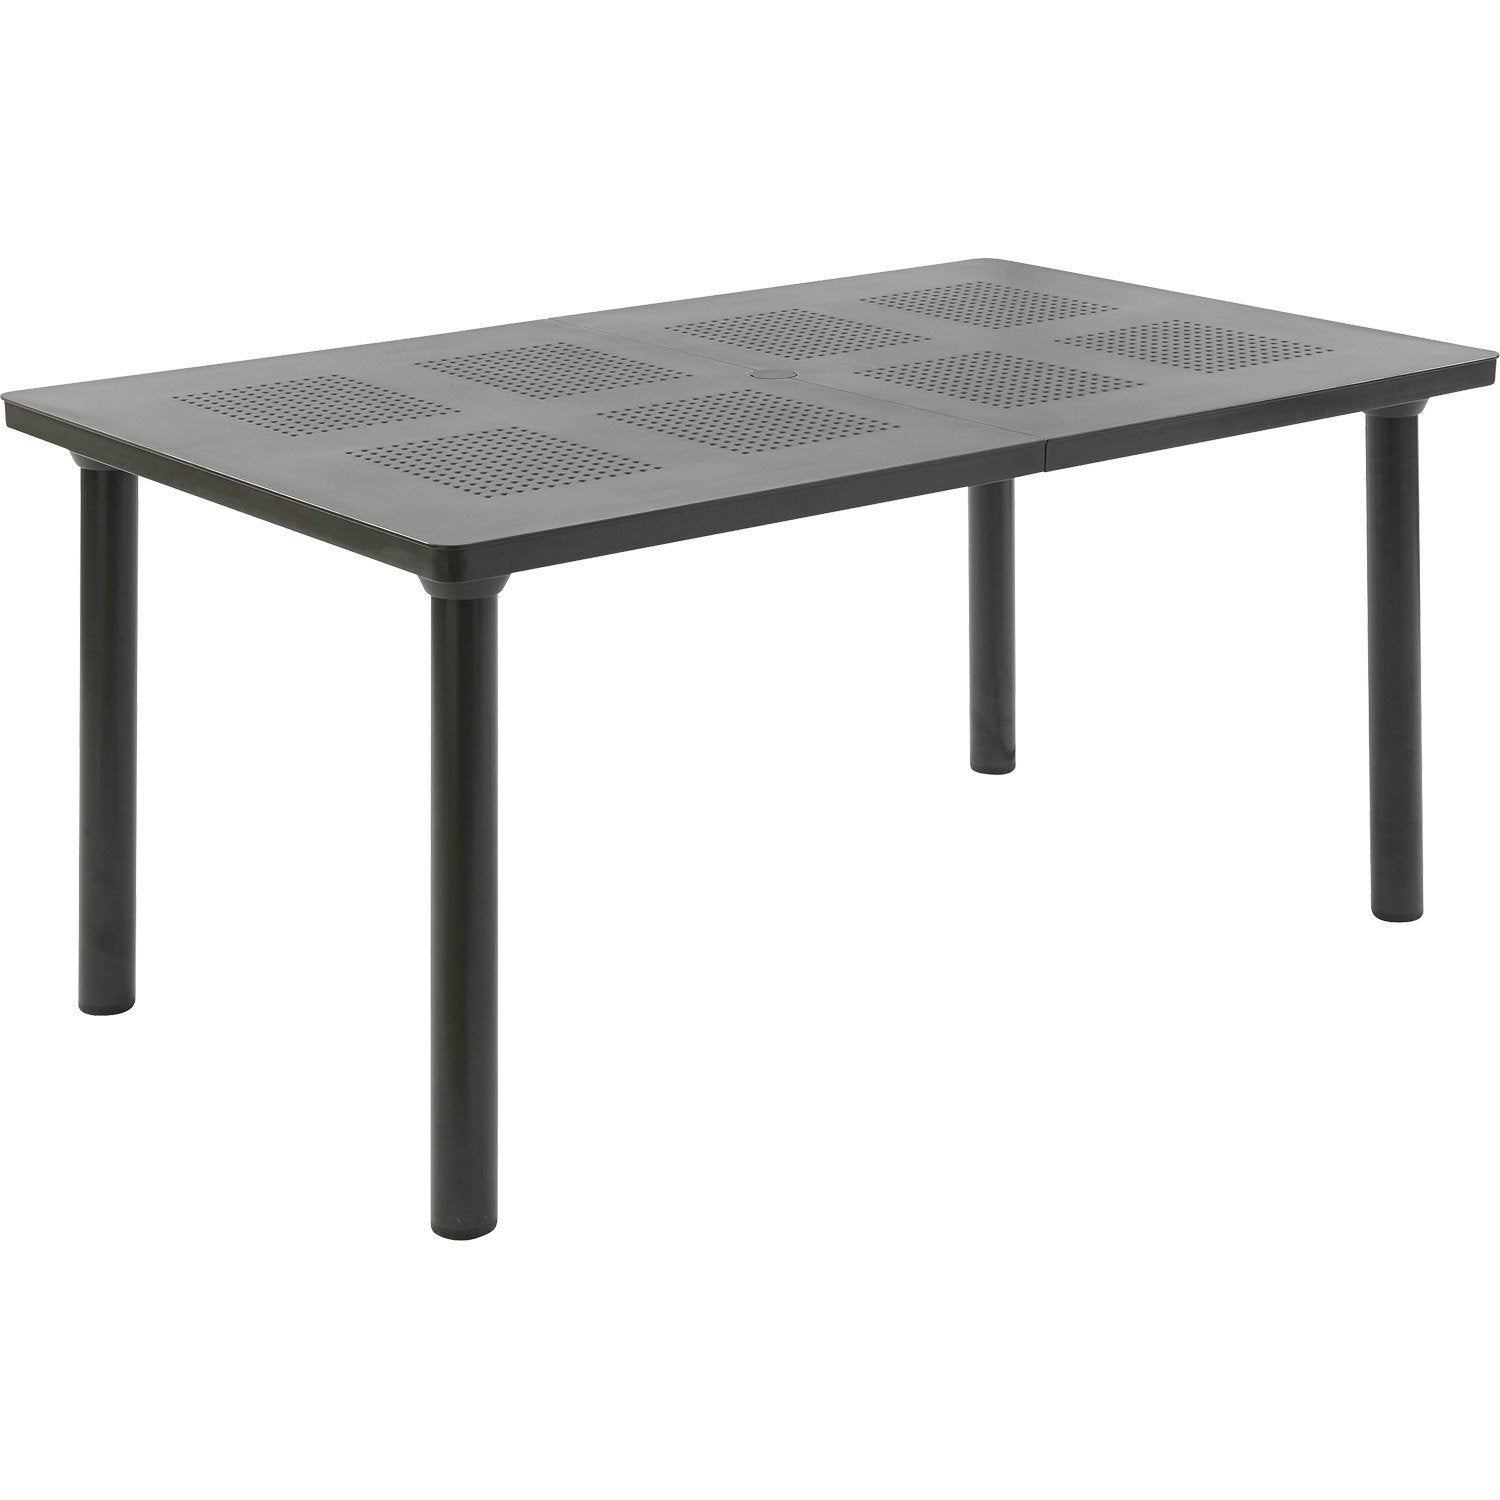 Table de jardin en r sine libeccio gris antracithe nardi for Table exterieur carrefour